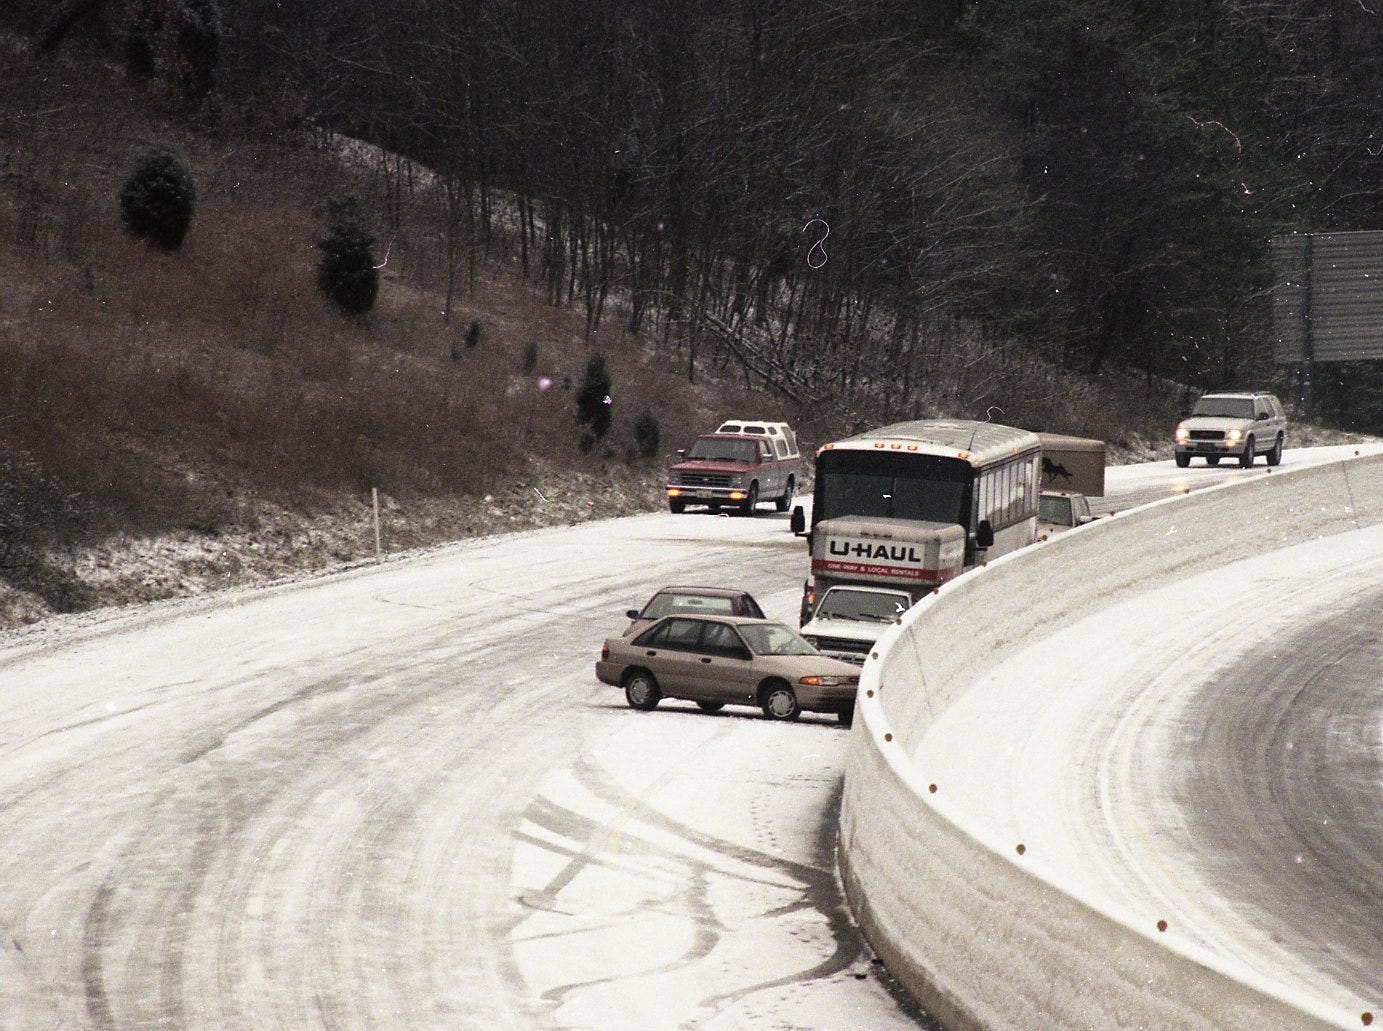 Cars, trucks and buses were stuck on I-75 between Emory Road and Racoon Valley Road in January 1996 when a light snow compacted to ice and caused vehicles to slide.